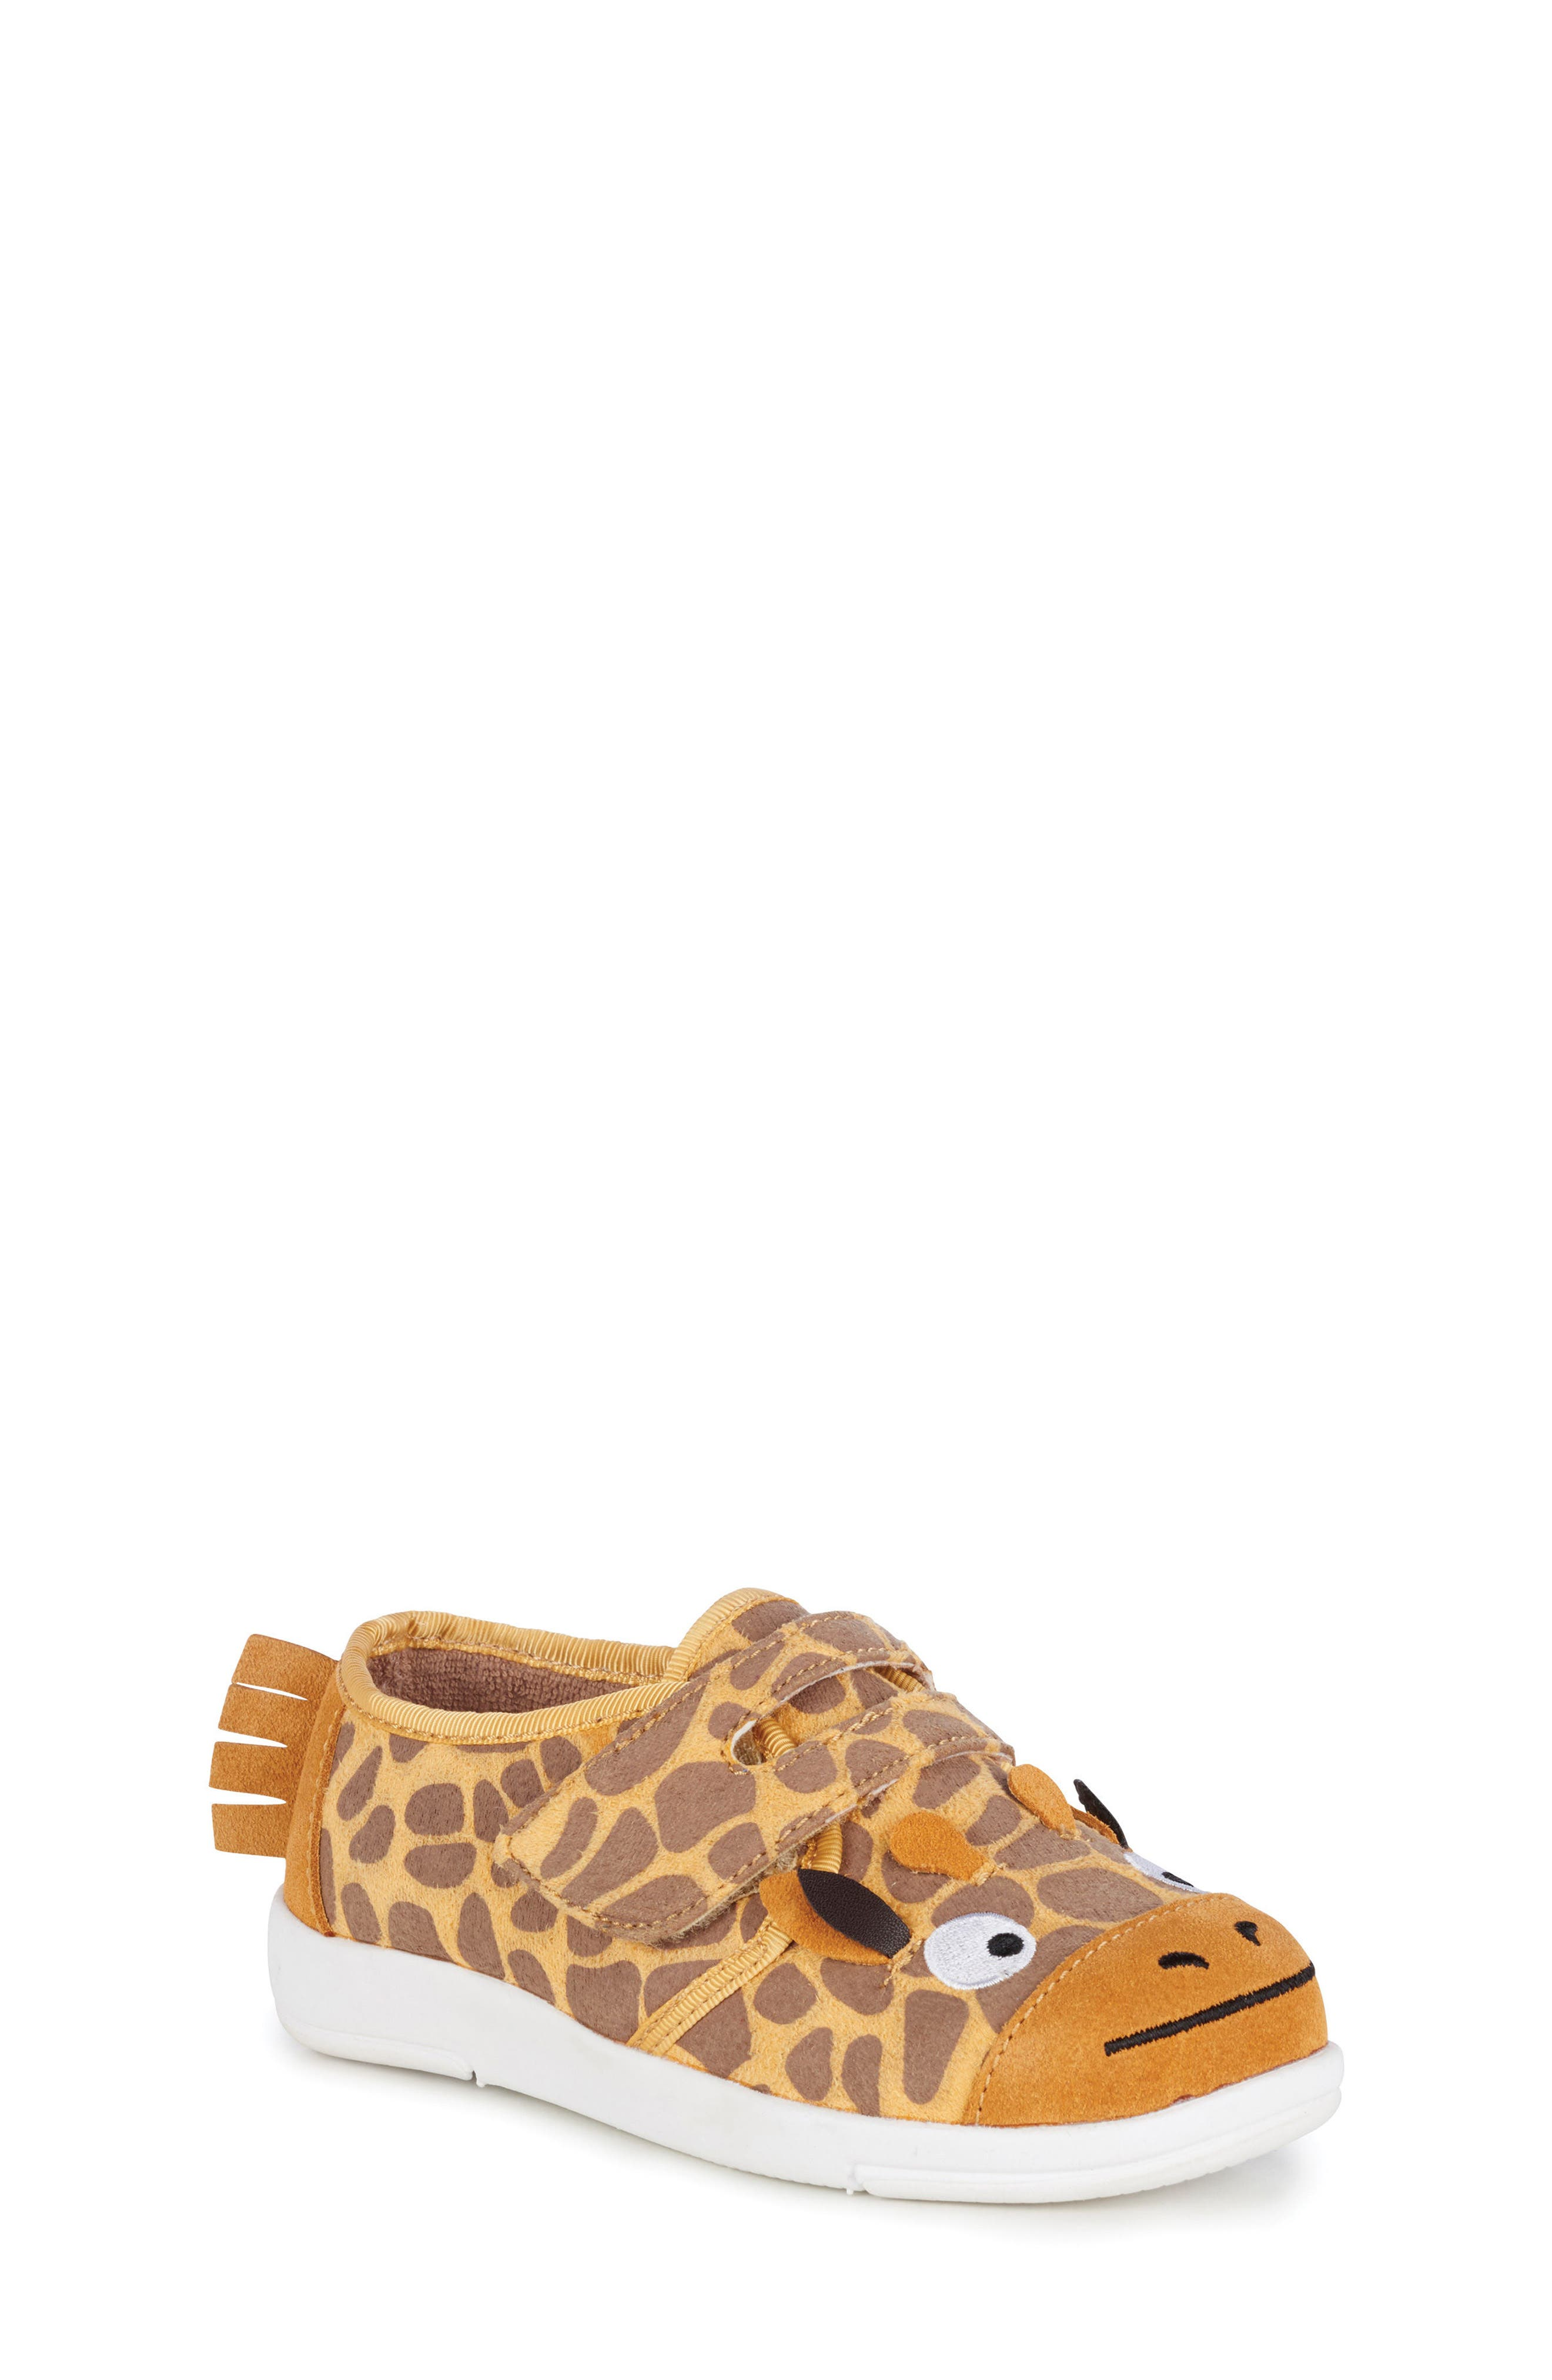 EMU Australia Giraffe Sneaker (Toddler, Little Kid & Big Kid)